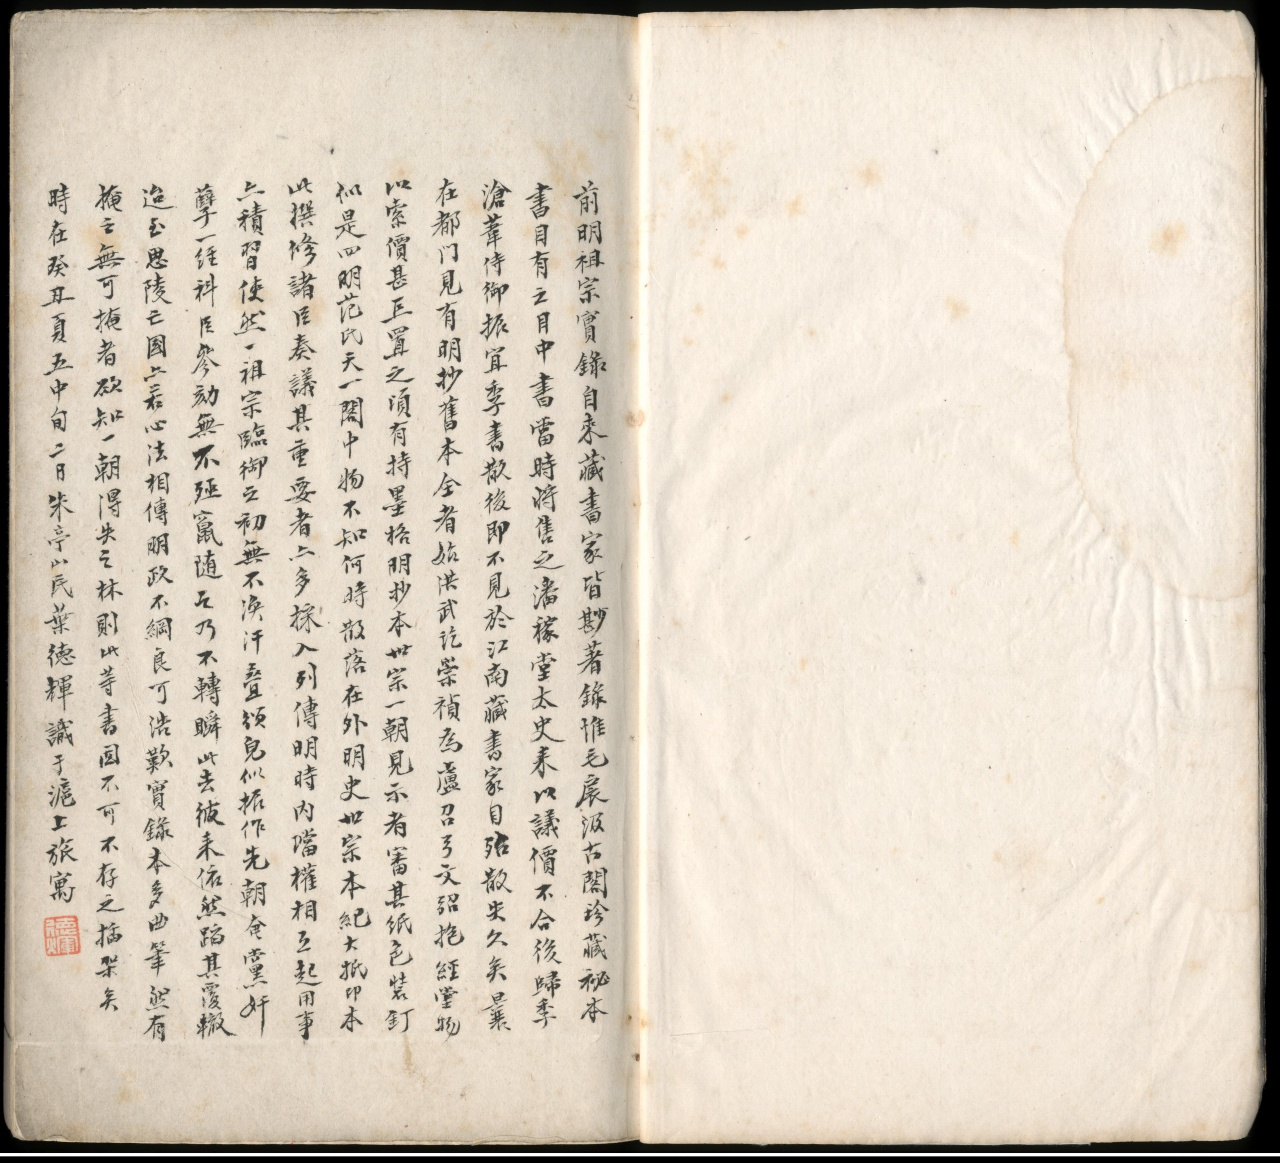 The Veritable Records of Ming Emperor Shizong with Handwritten Preface by Ye Dehui